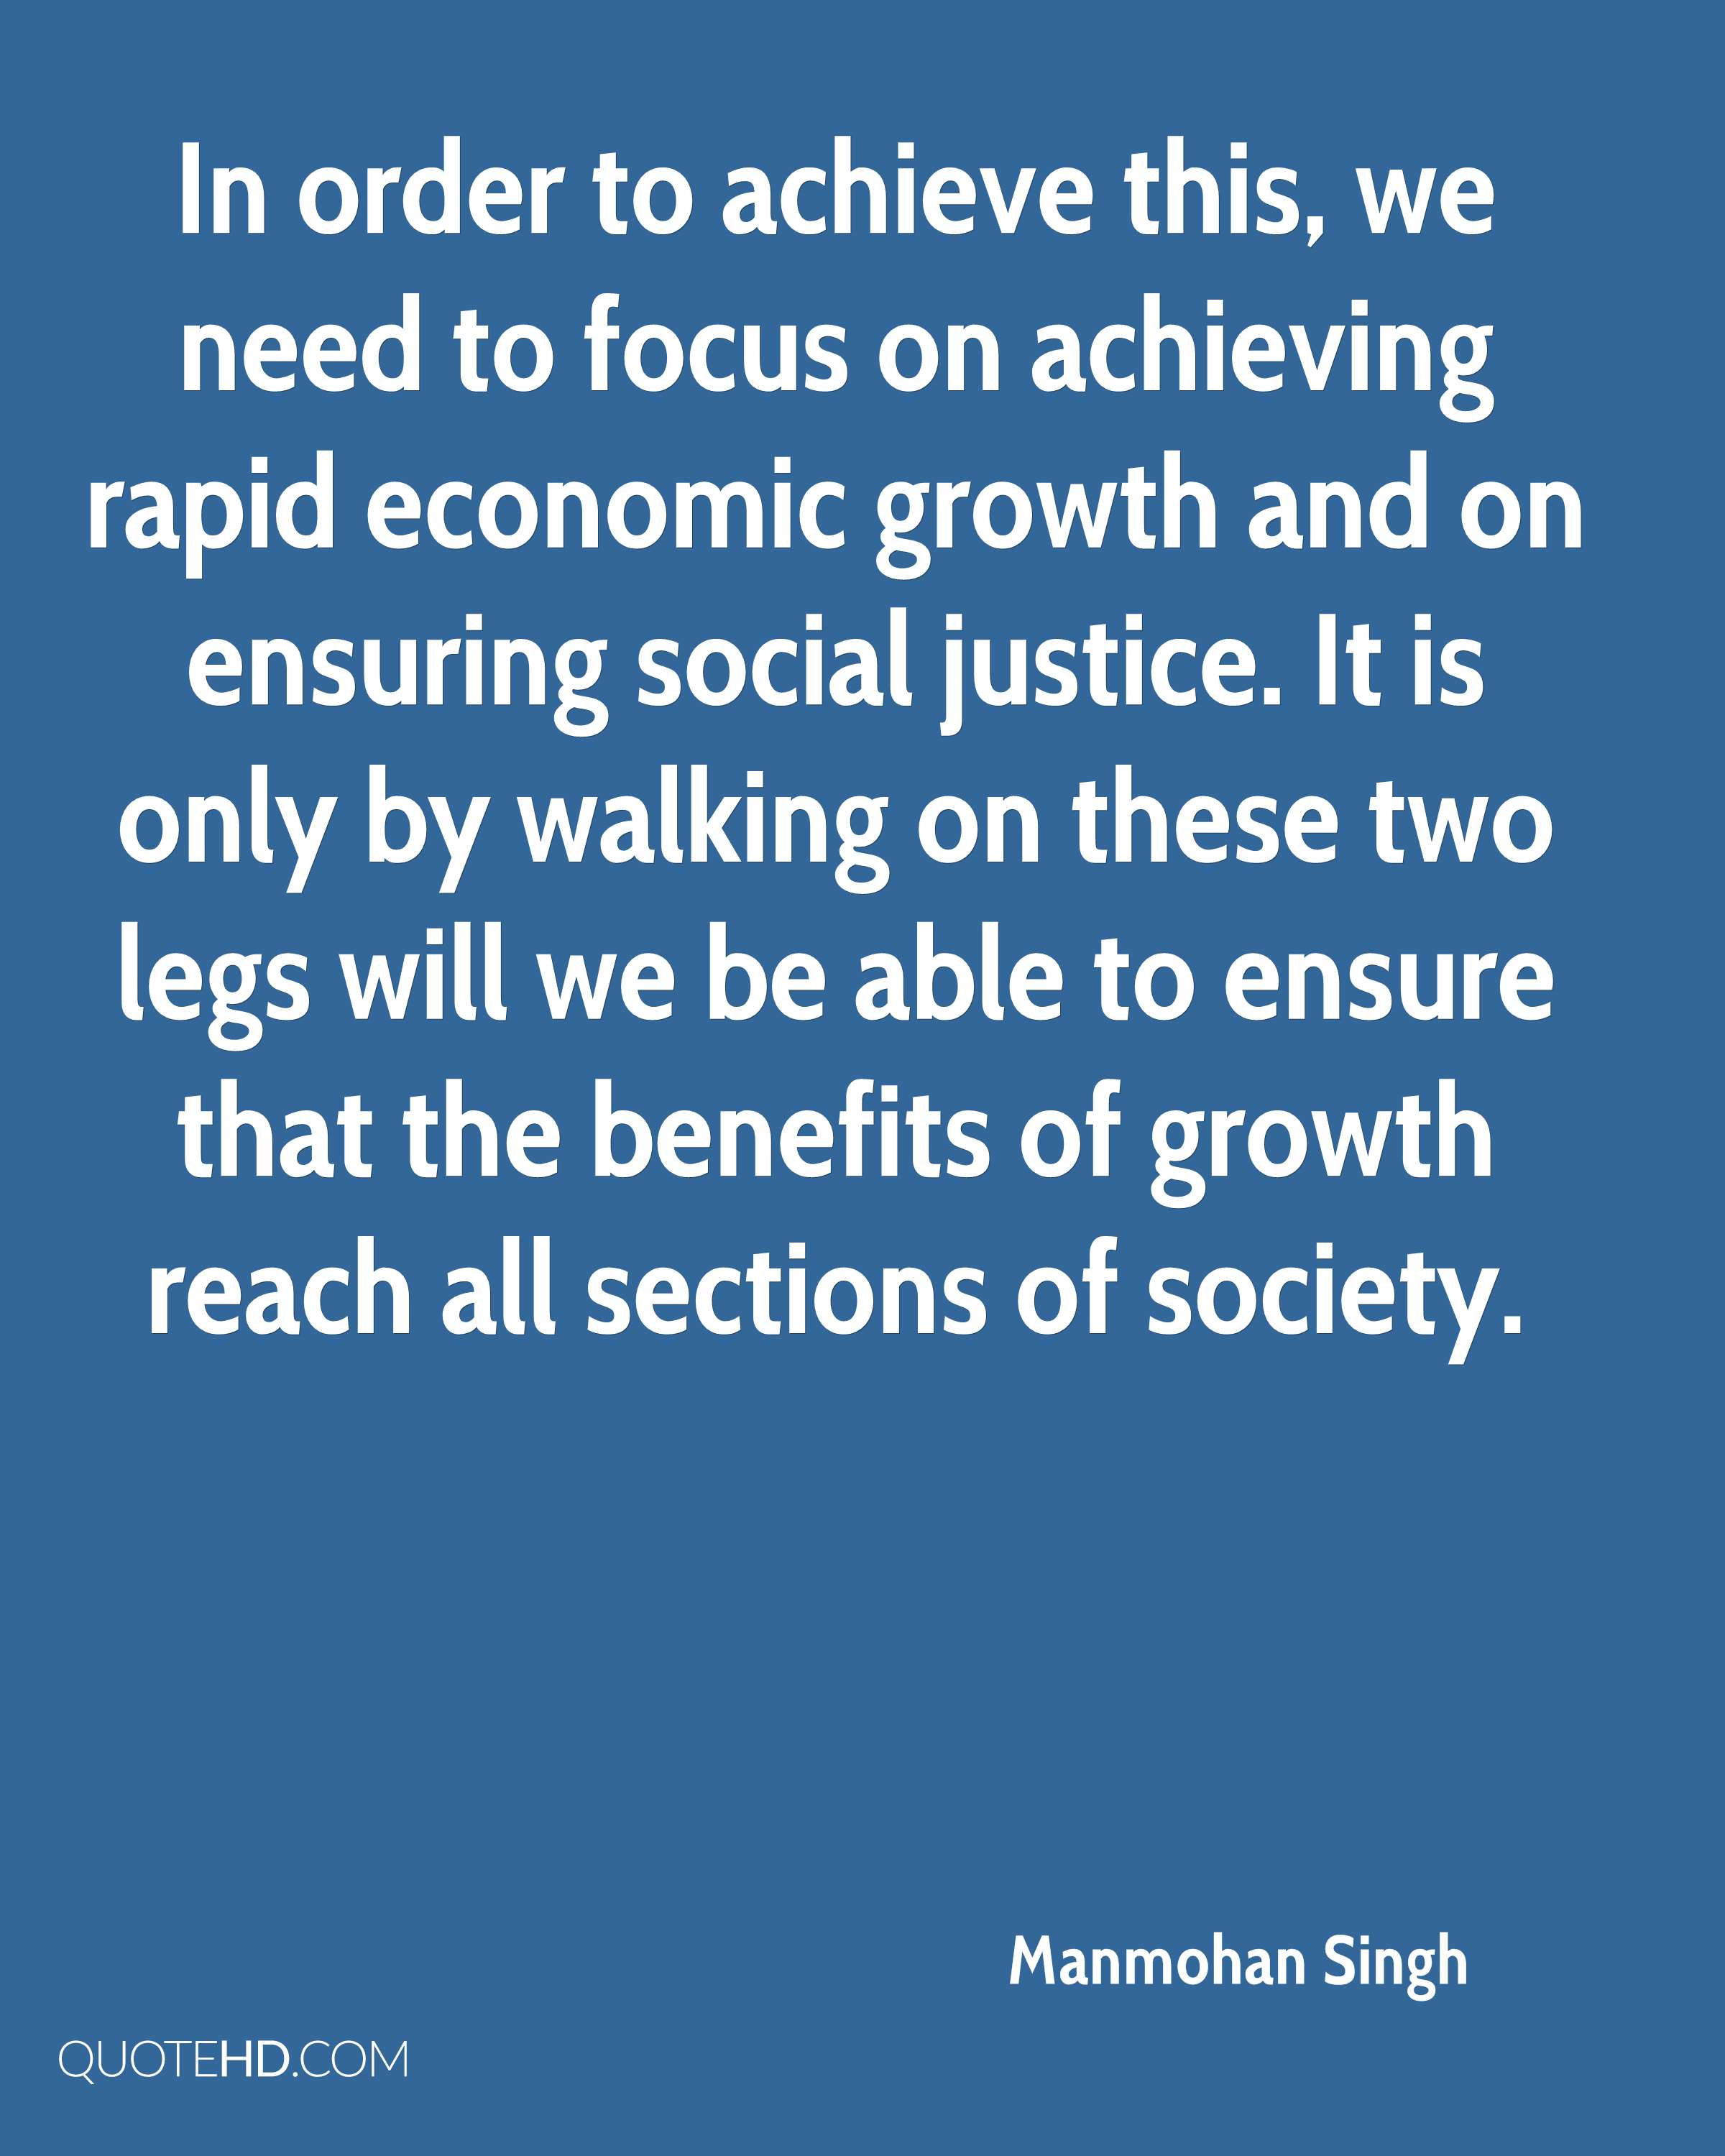 In order to achieve this, we need to focus on achieving rapid economic growth and on ensuring social justice. It is only by walking on these two legs will we be able to ensure that the benefits of growth reach all sections of society.